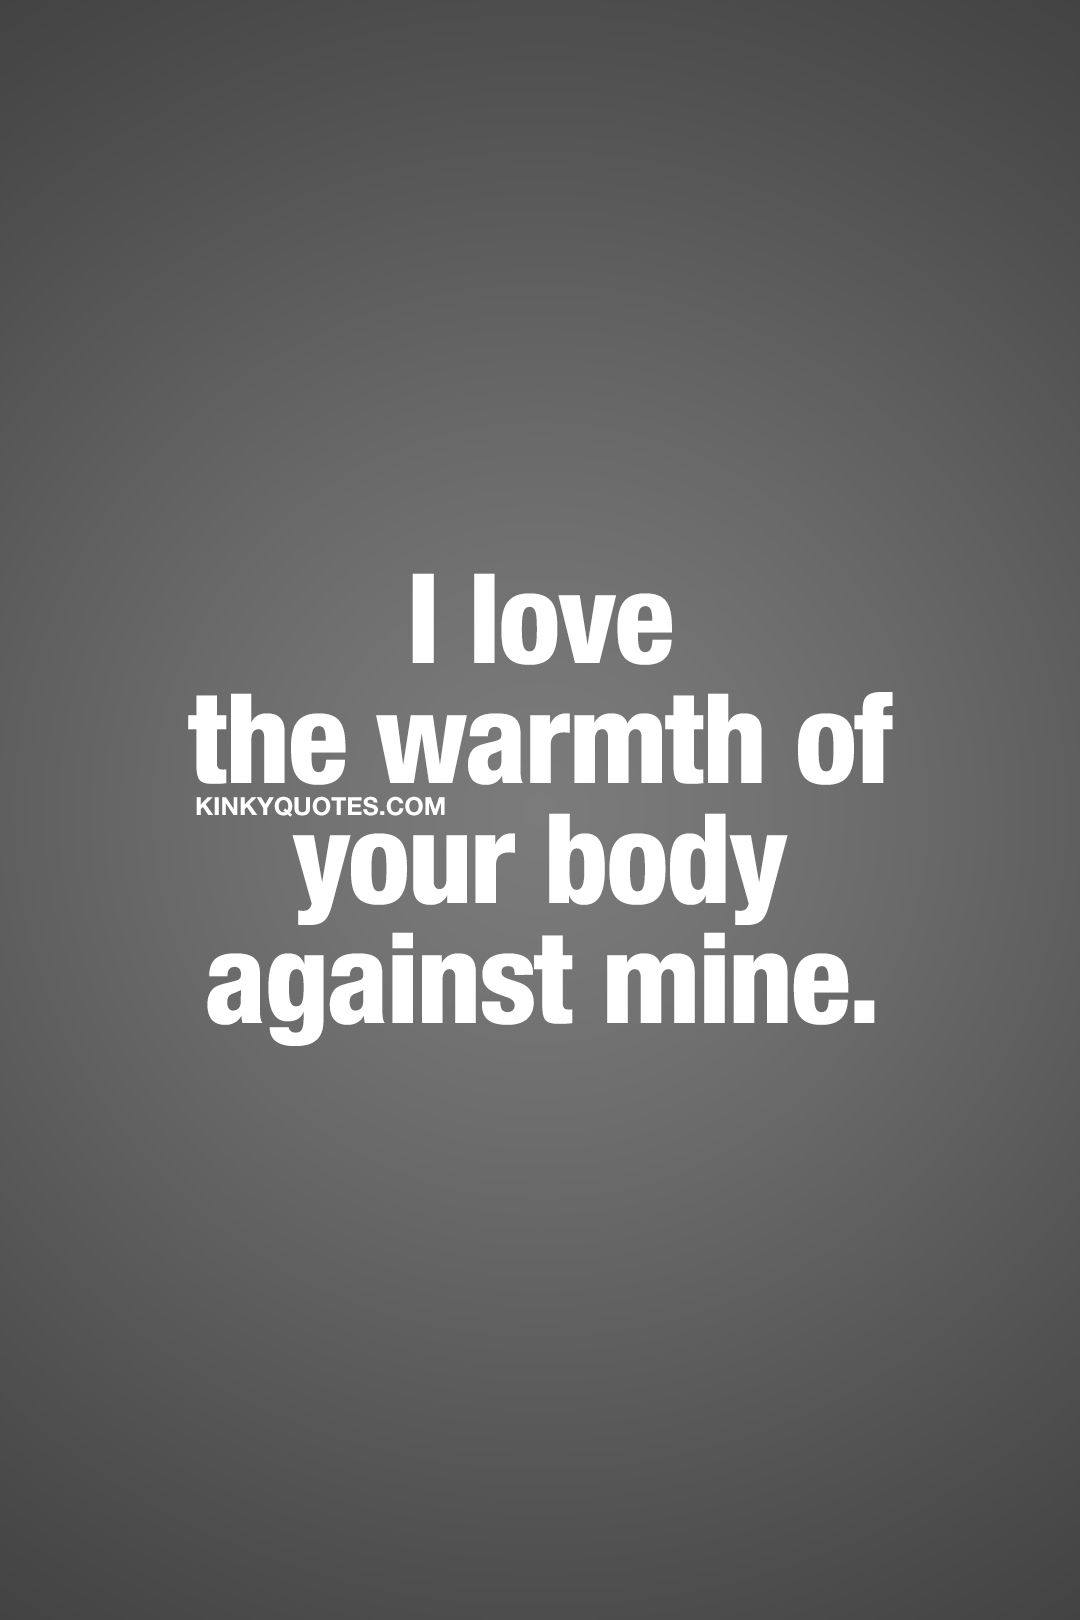 I love the warmth of your body against mine ❤ couple